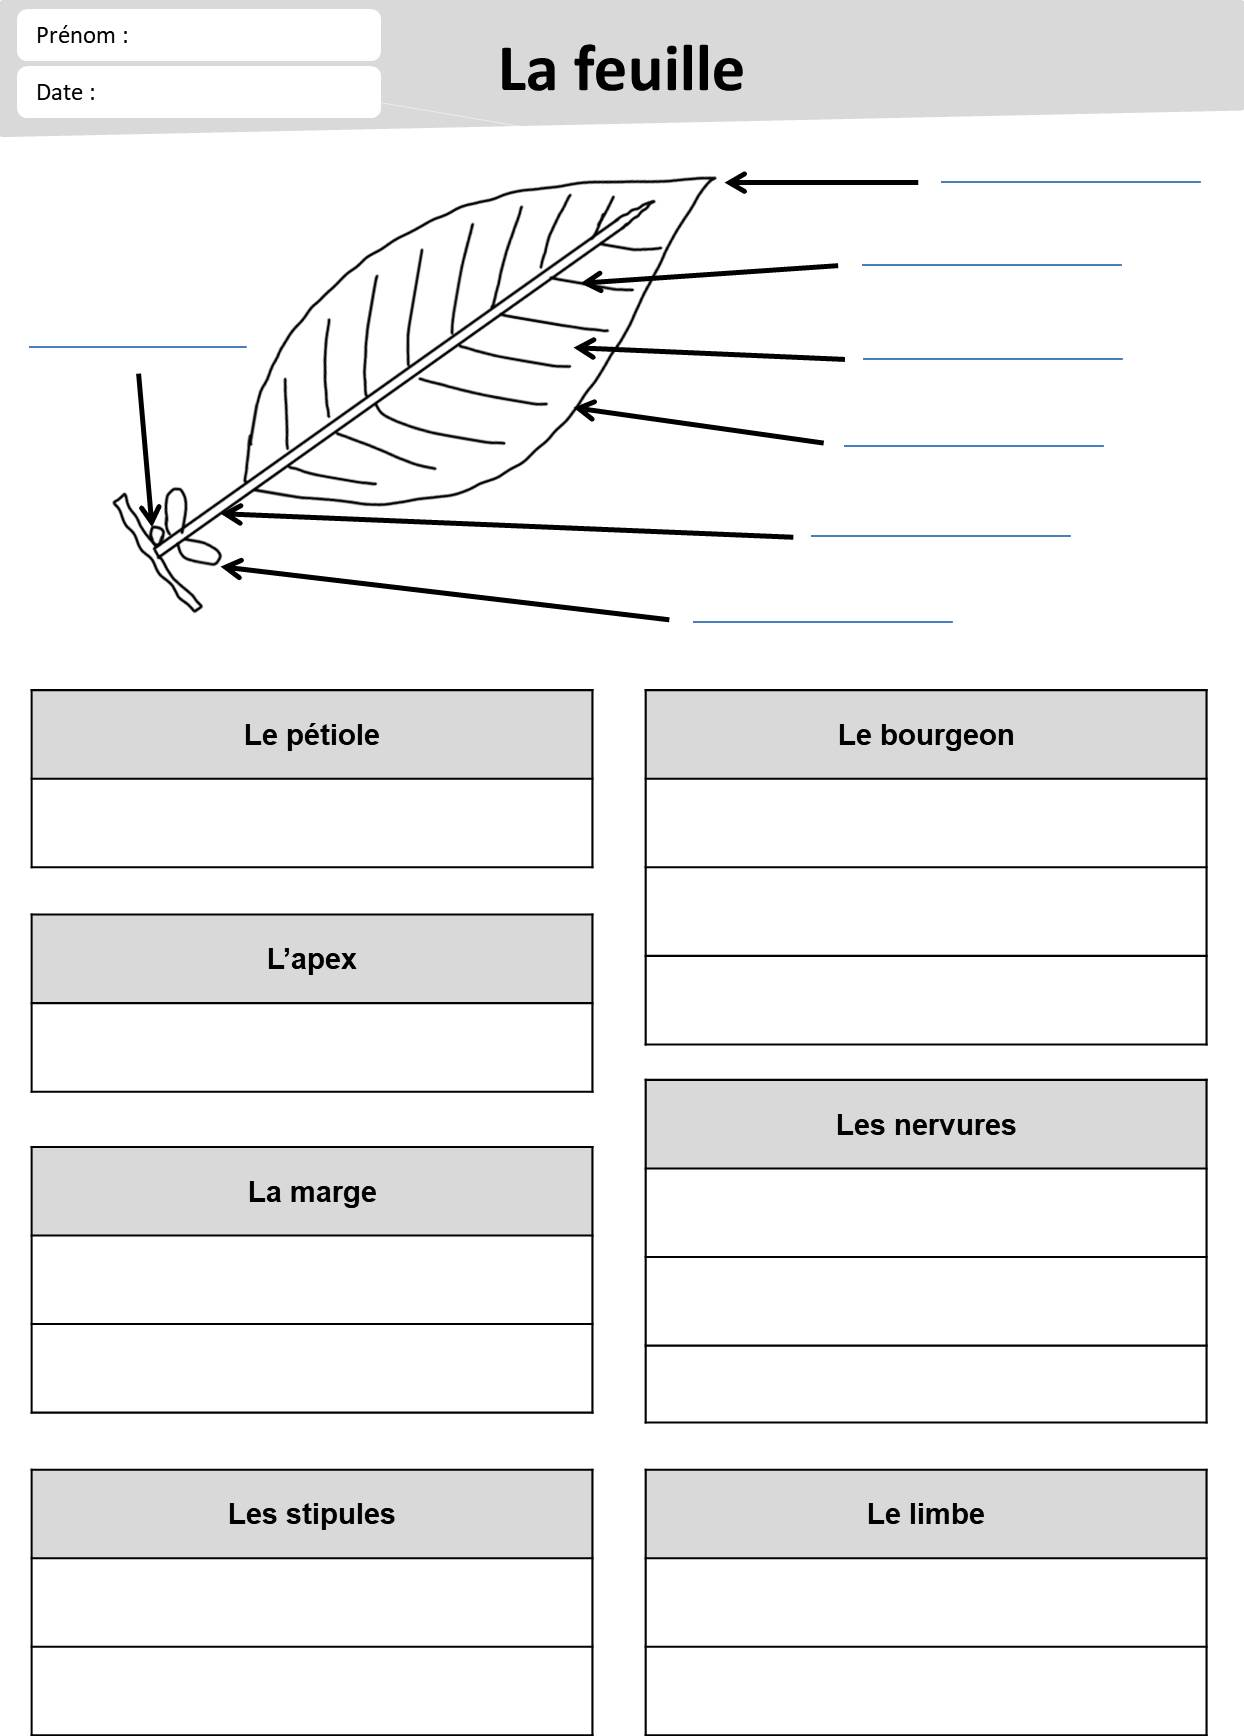 Evaluation Calendrier Ce1.Loustics Ma Classe Delementaire